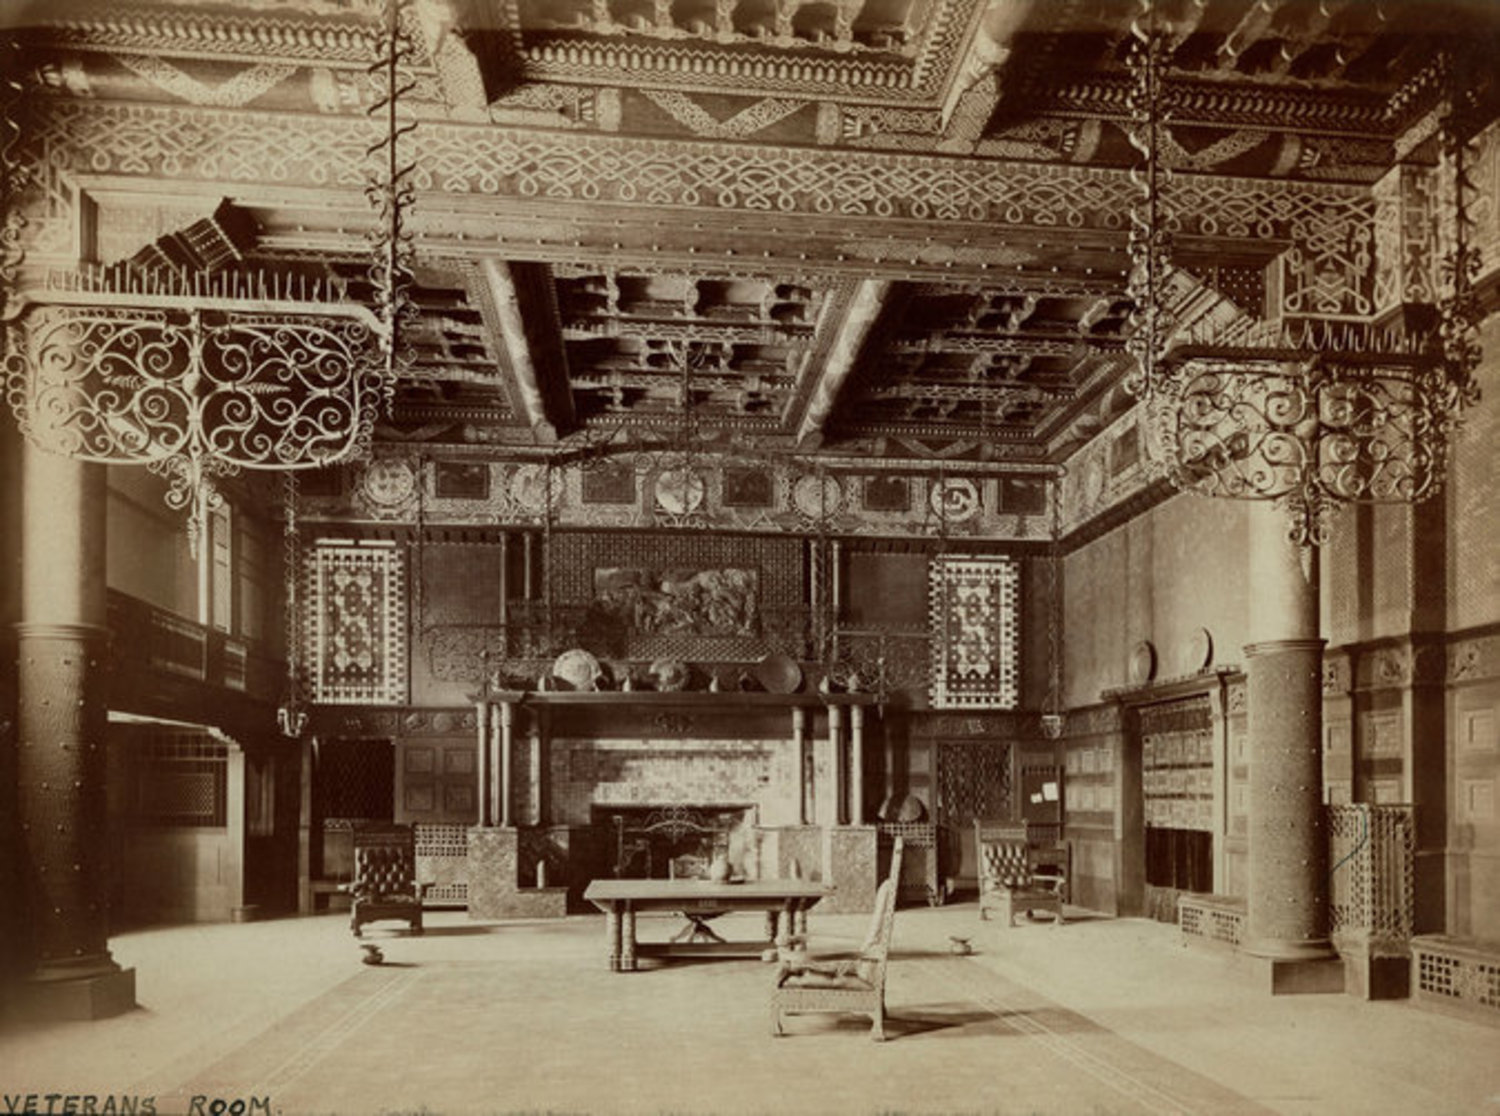 The Veterans Room as it looked in 1881. Image via Park Avenue Armory